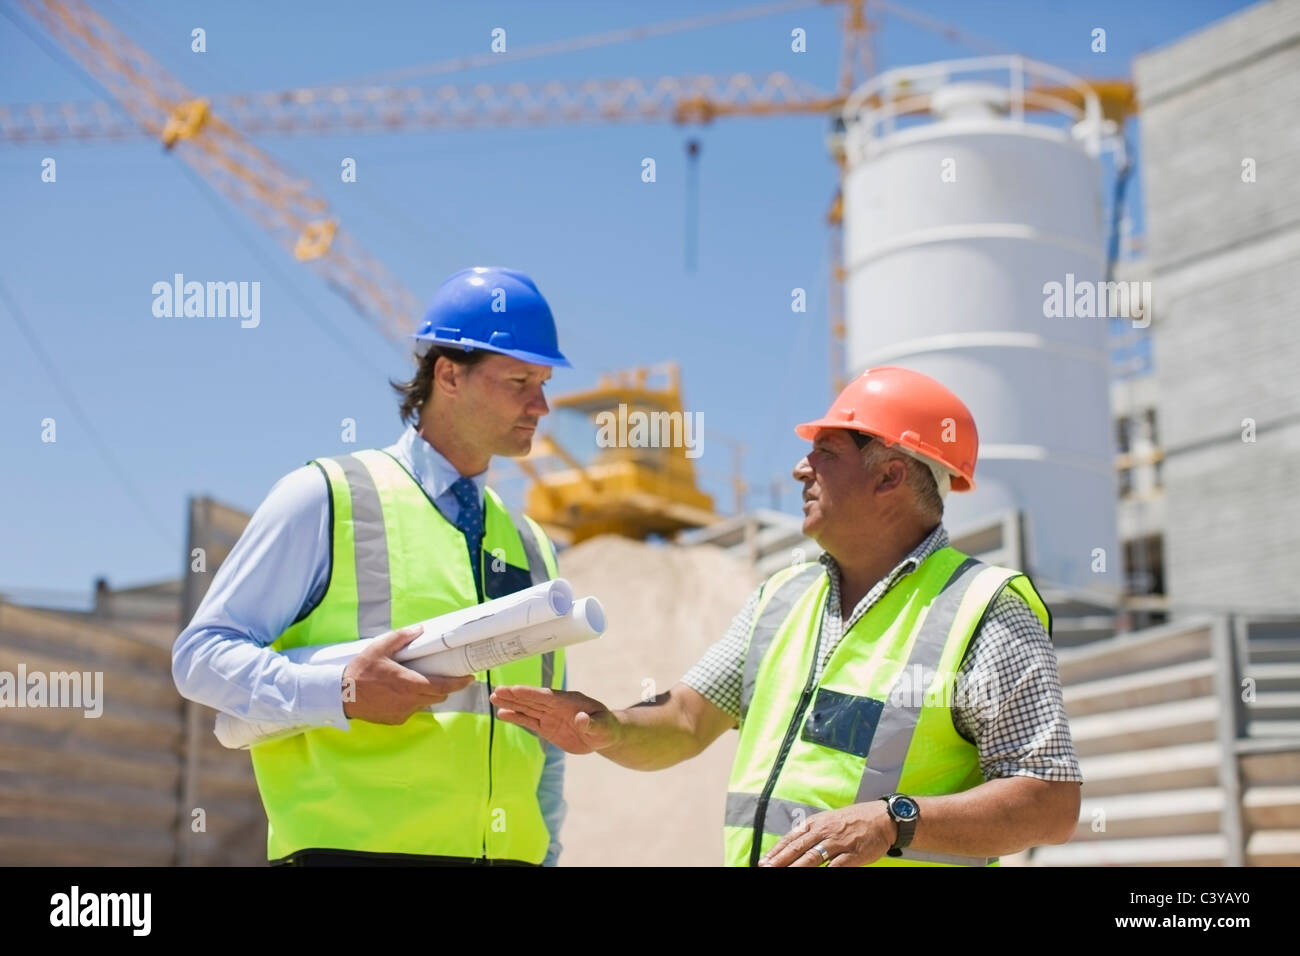 Architect talking to a building worker - Stock Image